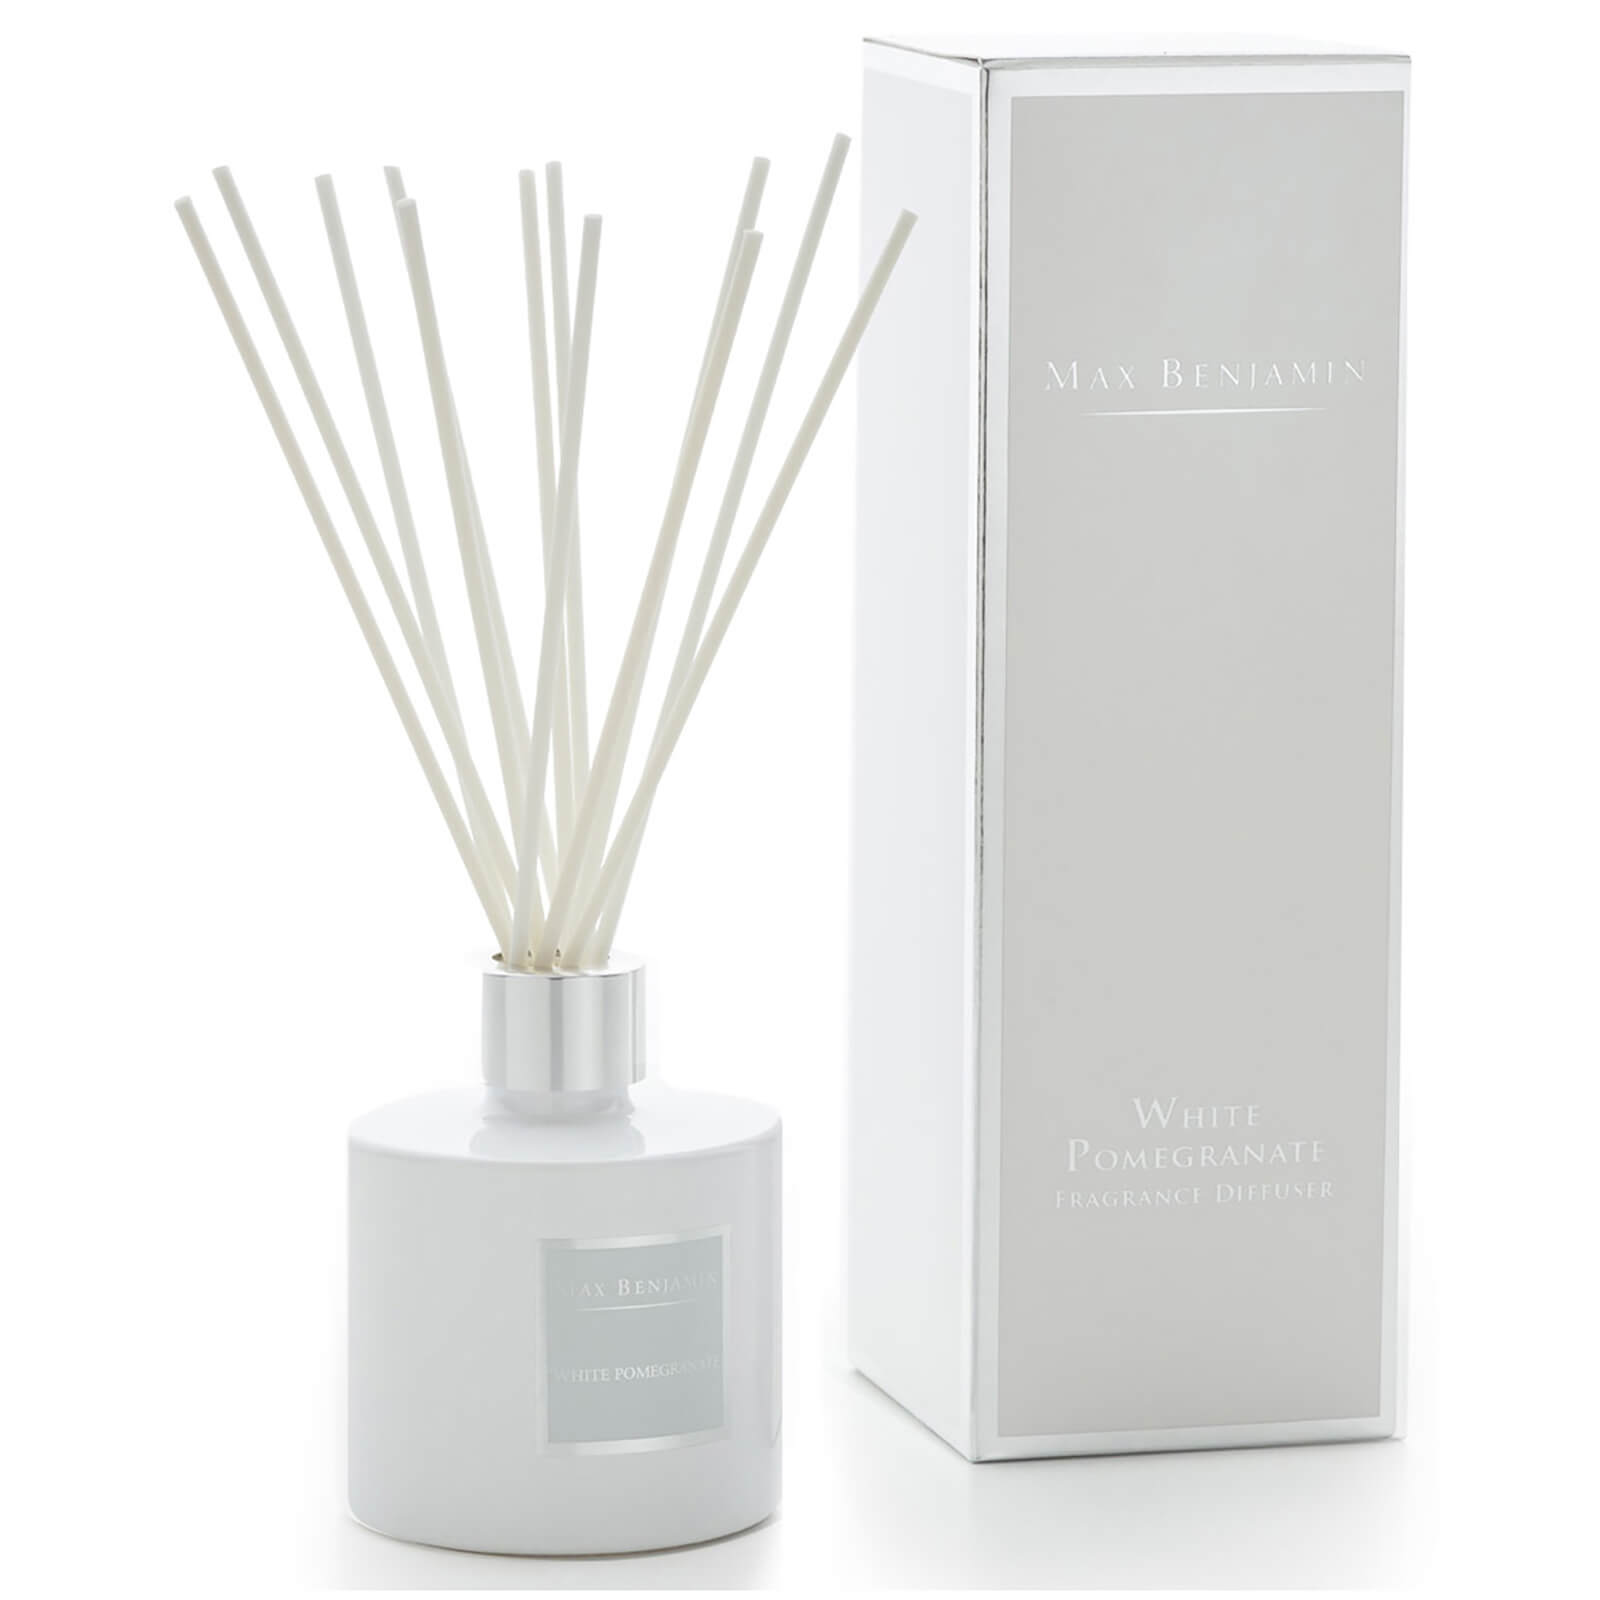 Max Benjamin Fragrance Diffuser - White Pomegranate